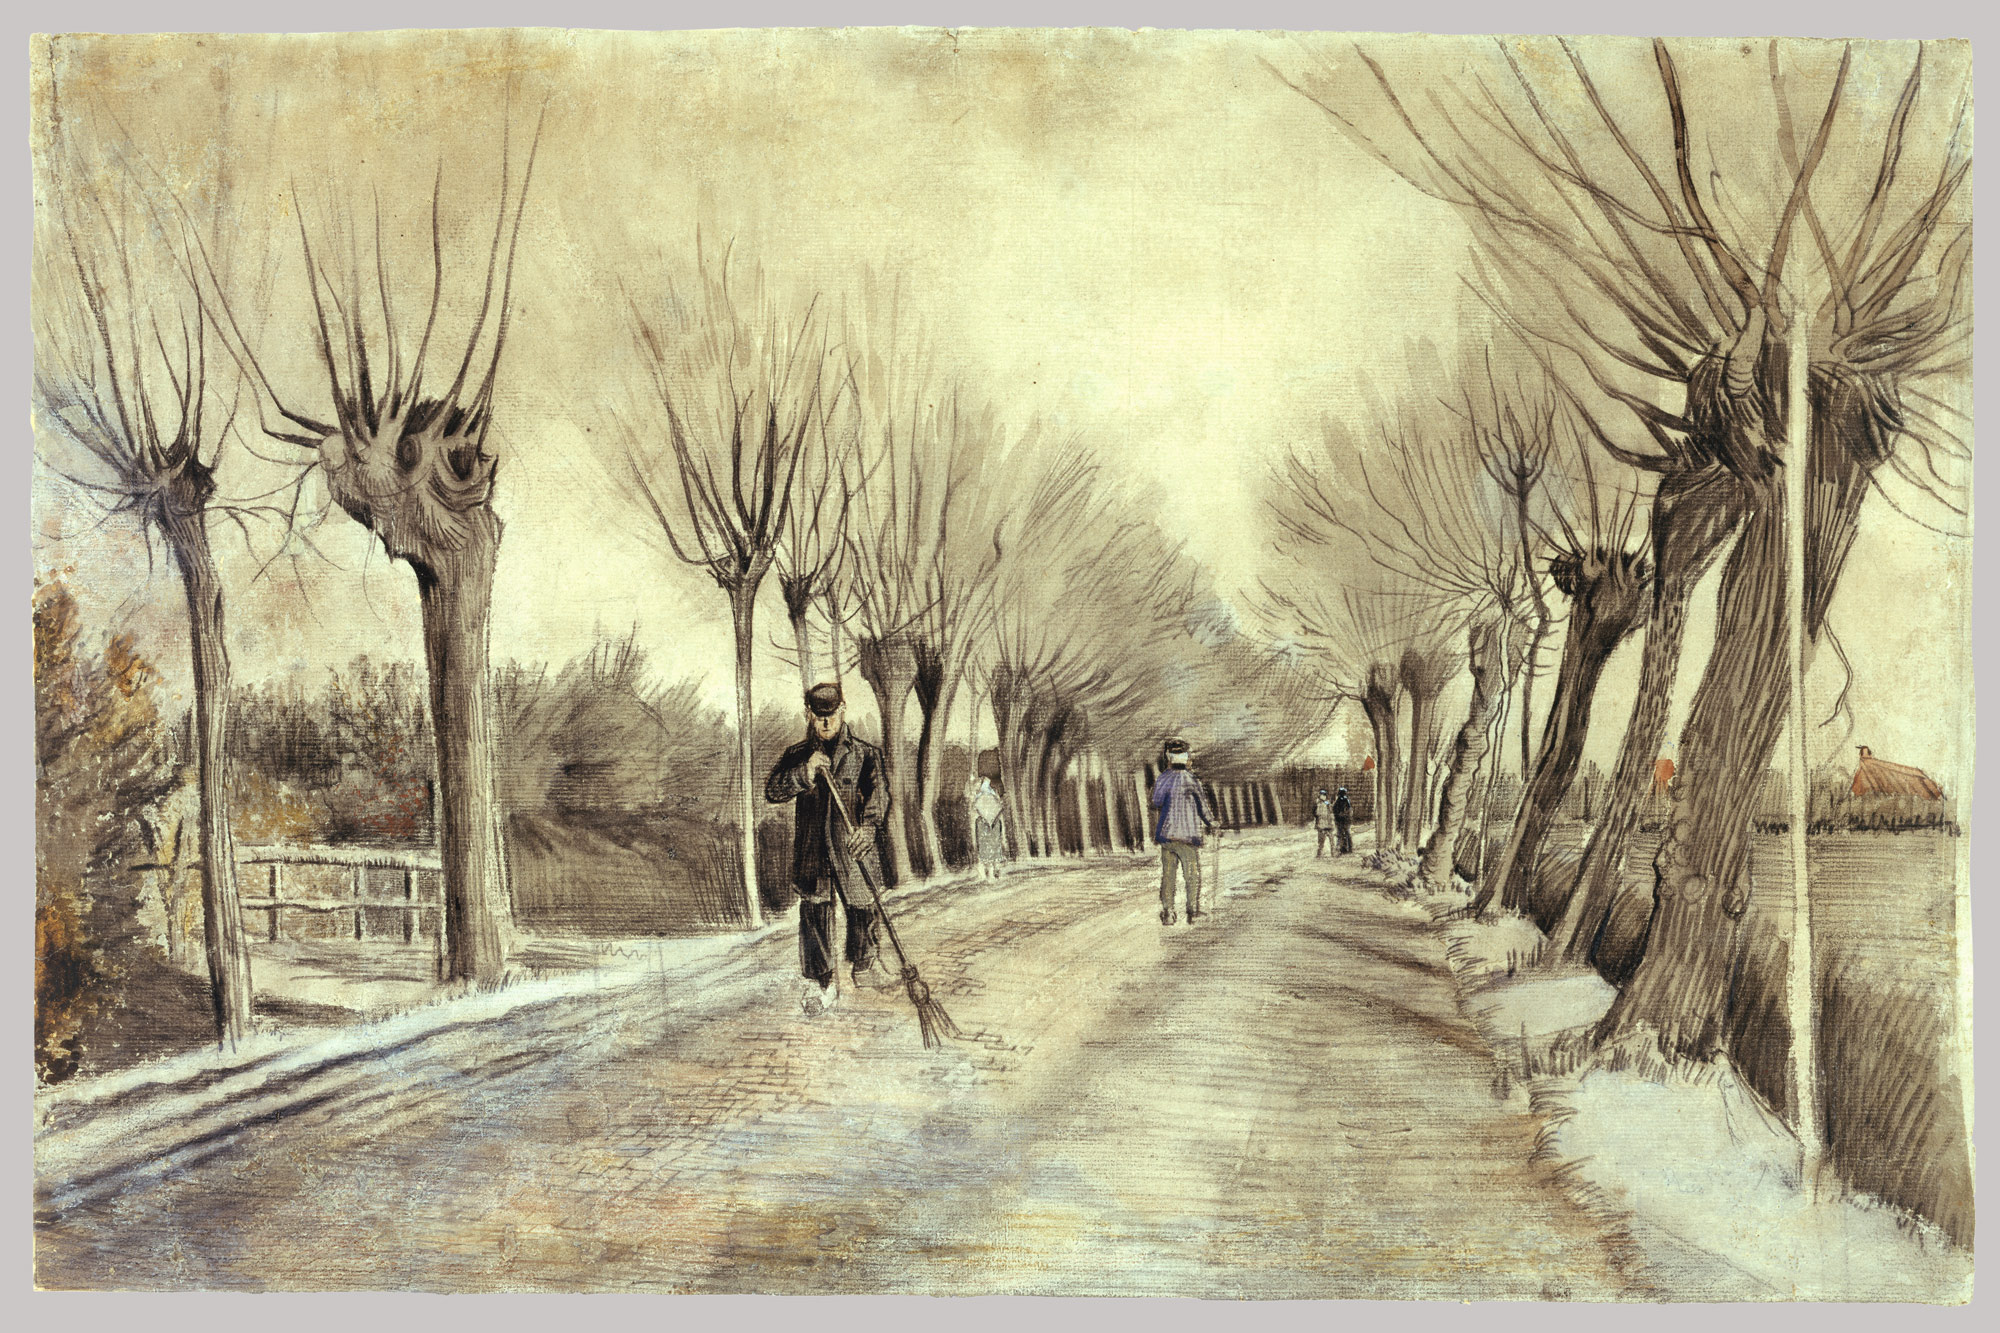 vincent van gogh 1853 1890 the drawings essay heilbrunn road in etten